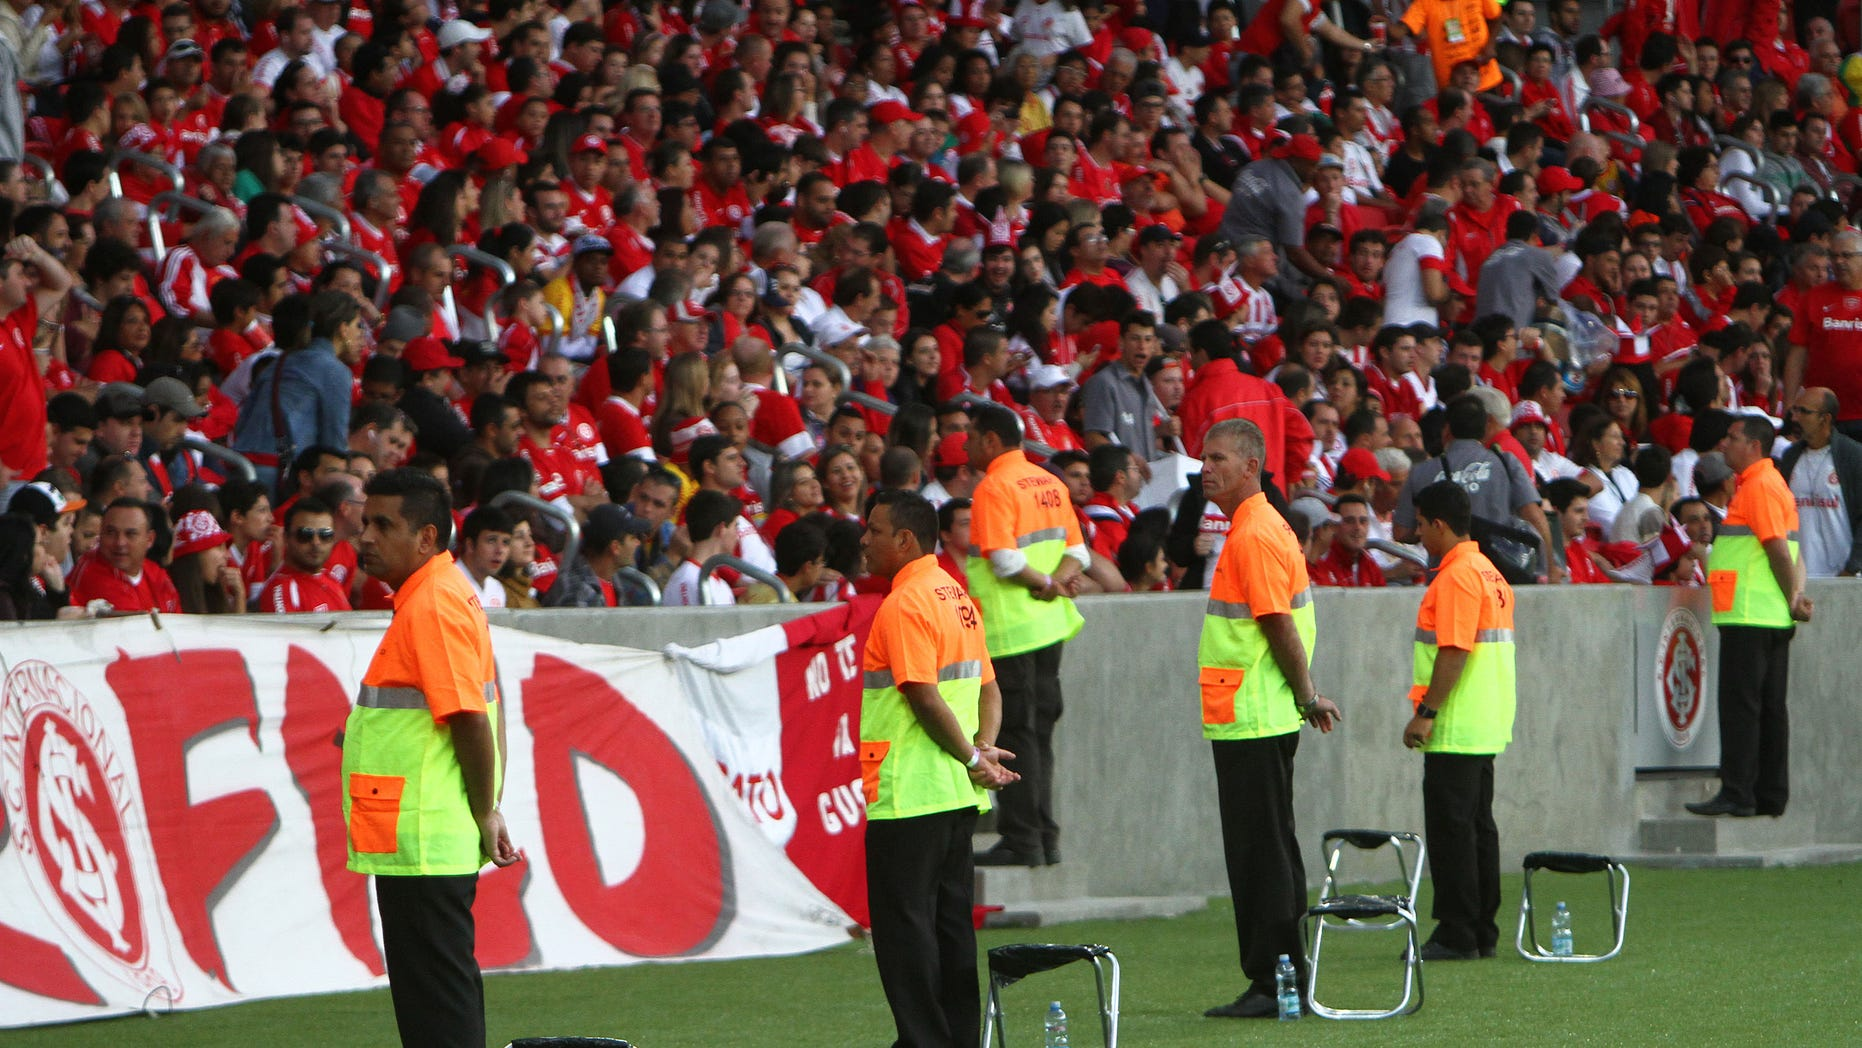 PORTO ALEGRE, BRAZIL - MAY 10:  Stewards looks on Internacional fans before match between Internacional and Atletico-PR as part of Brasileirao Series A 2014 in Beira-Rio Stadium on May 10, 2014, in Porto Alegre, Brazil. This match is one of the test events for FIFA 2014 World Cup which Beira-Rio will host five games. (Photo by Lucas Uebel/Getty Images)